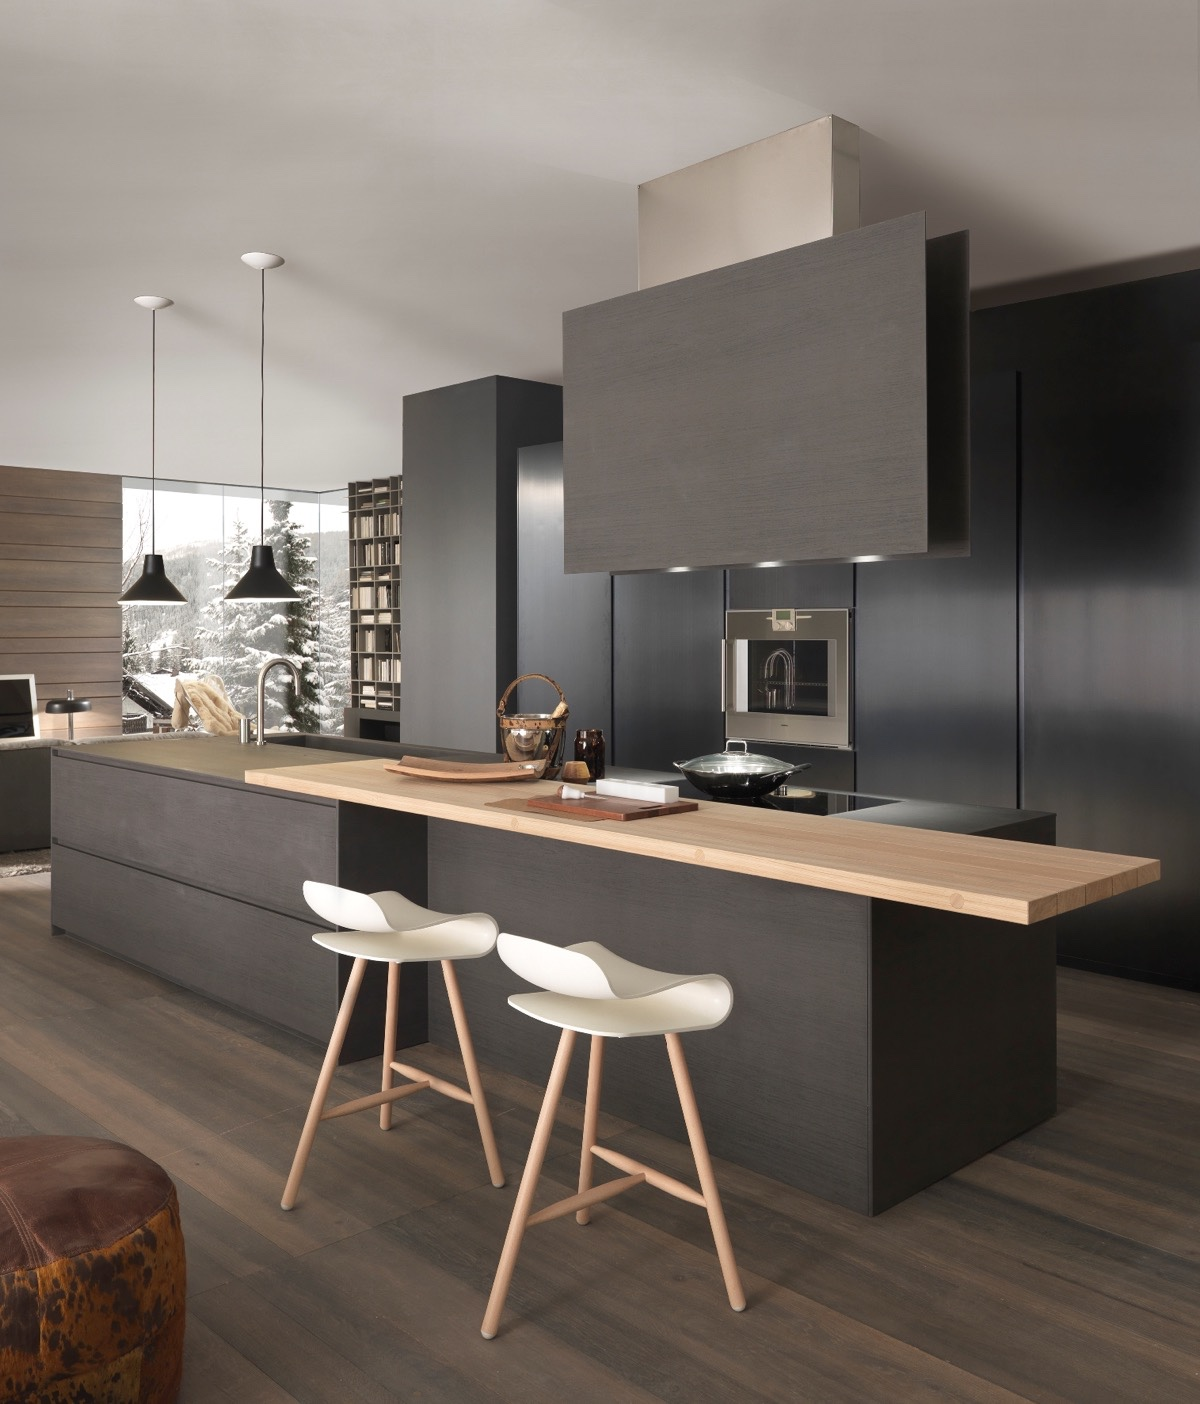 Cuisine Blanc Et Marron: 36 Stunning Black Kitchens That Tempt You To Go Dark For